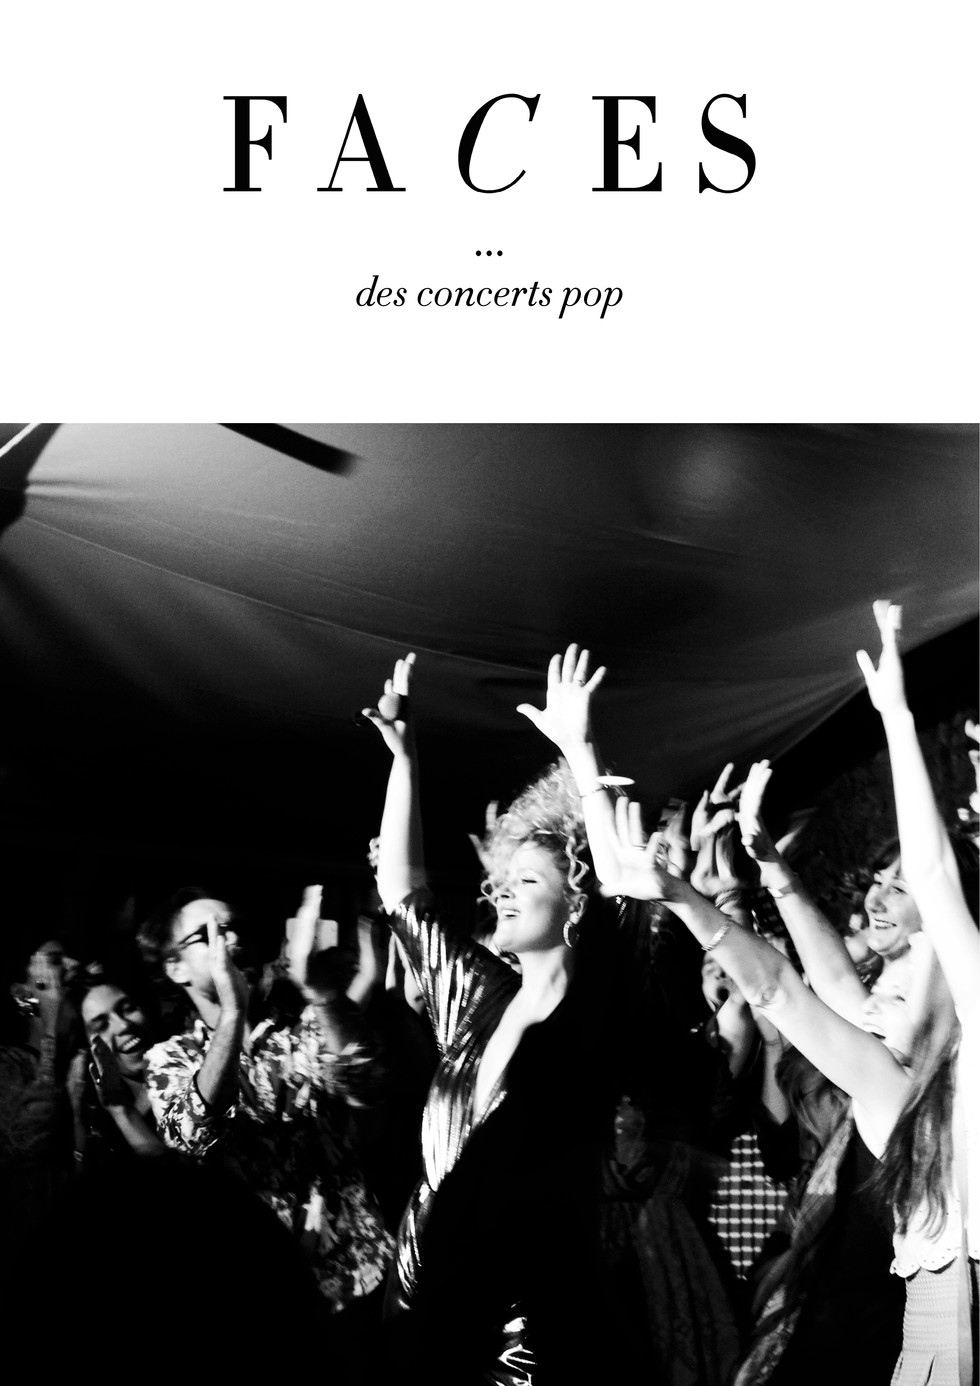 Faces - Des concerts pop